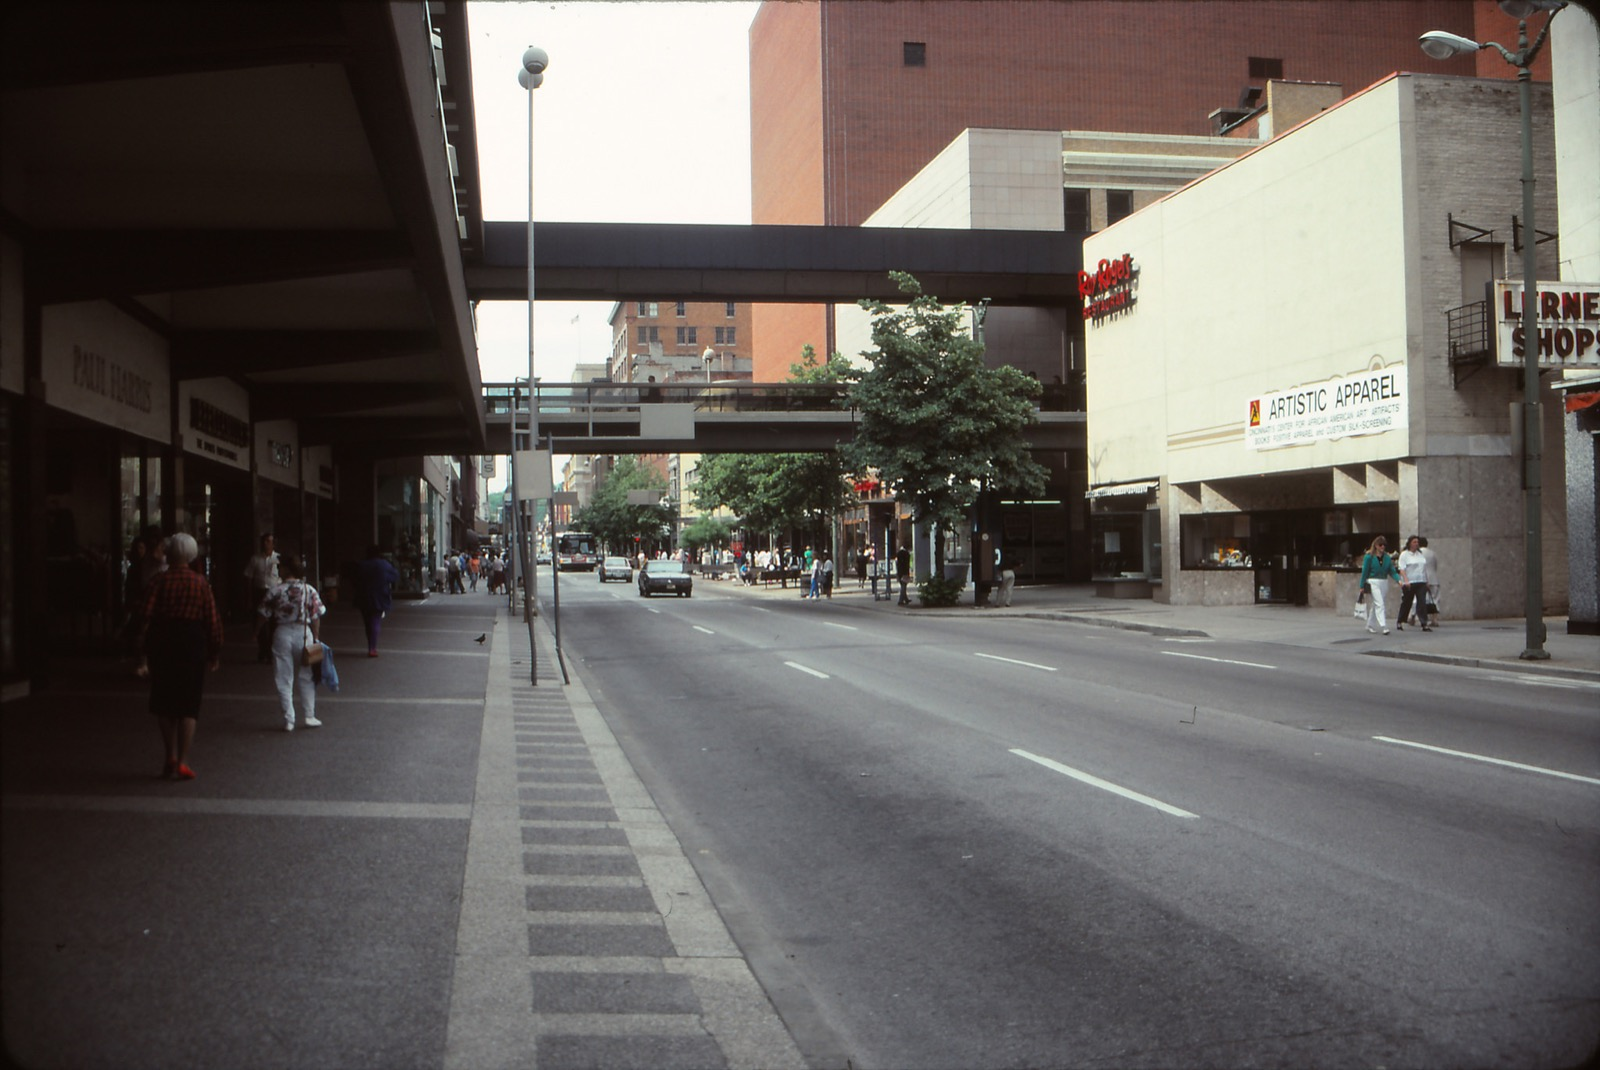 Race Street (looking north) between 5th and 6th Streets / Image courtesy of Flickr user mplstodd // Published: 3.12.18